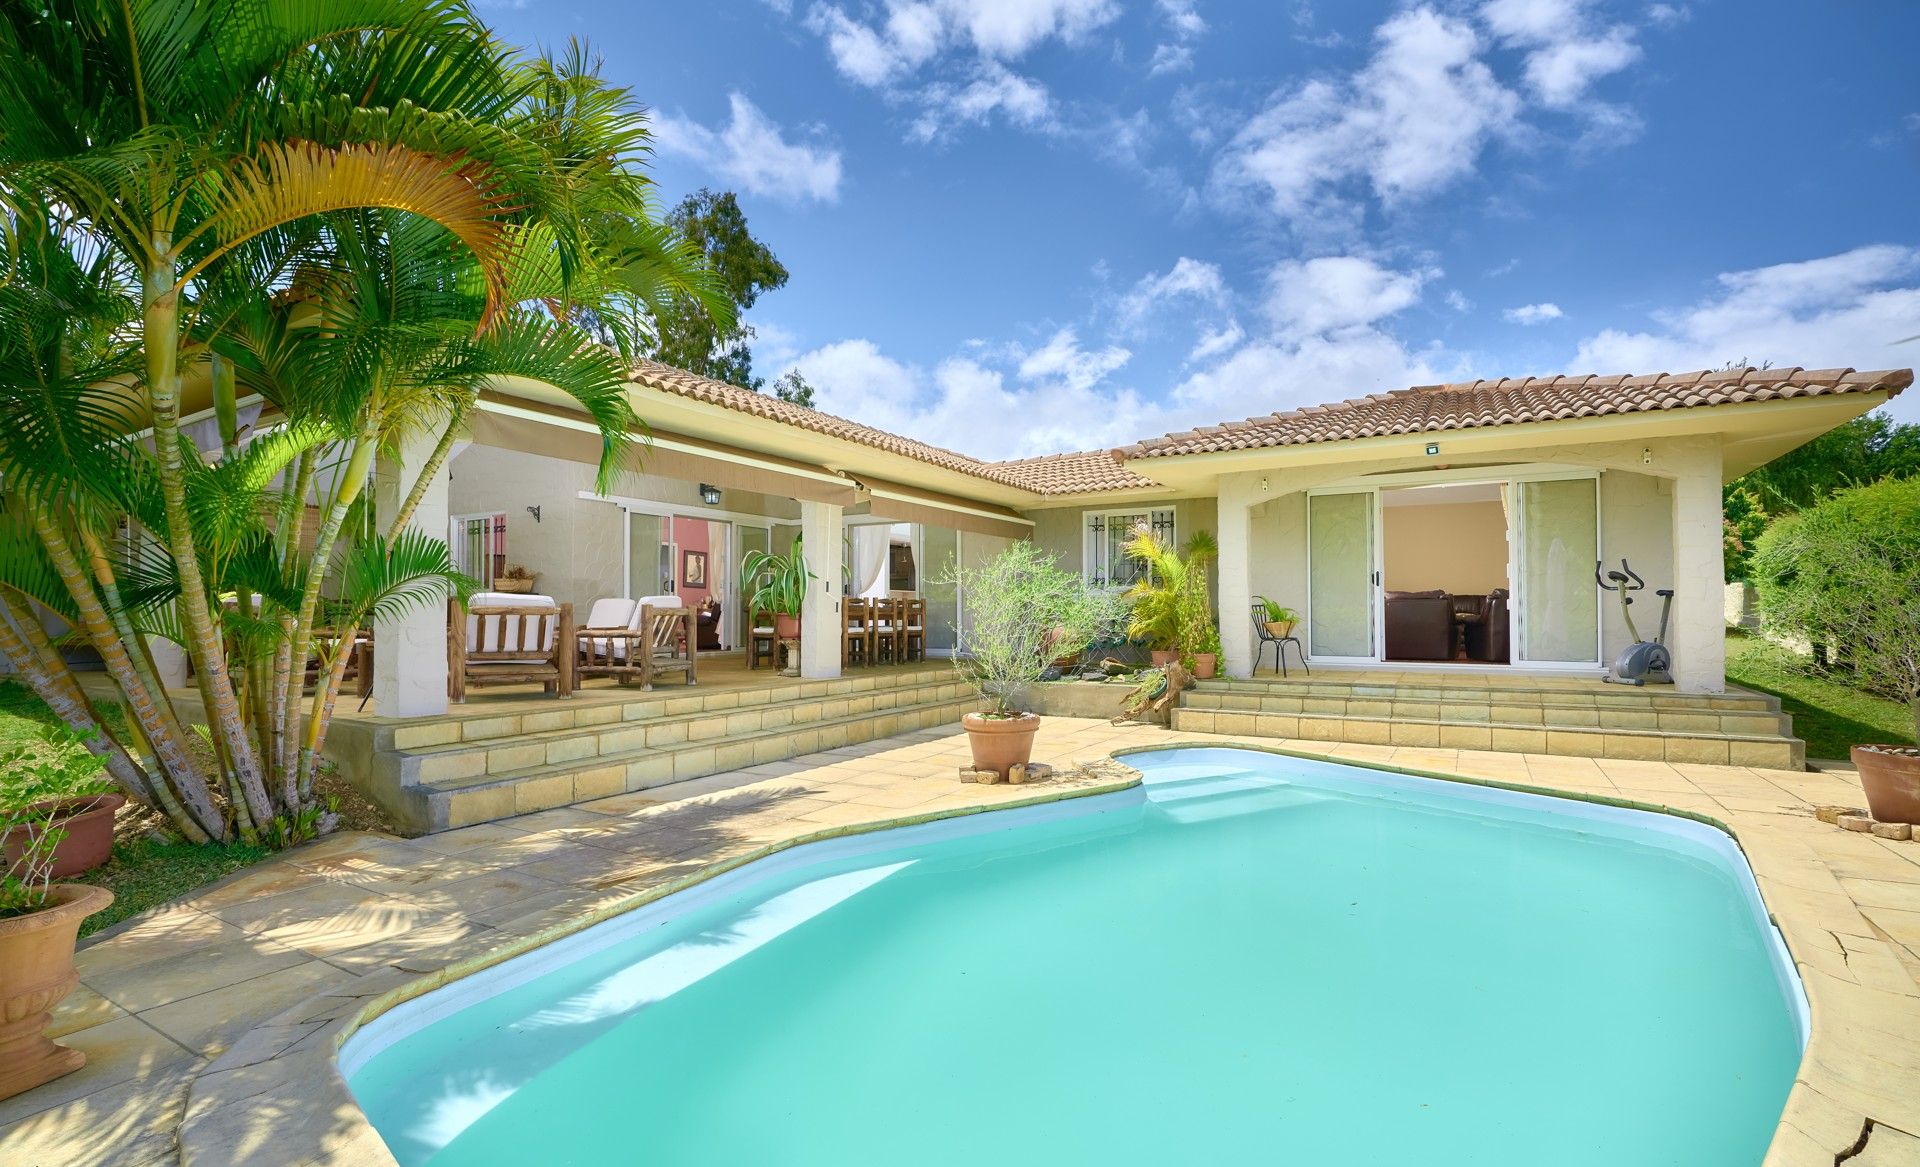 Single Family Home for Sale at Tranquillity villa Black River, Black River Mauritius